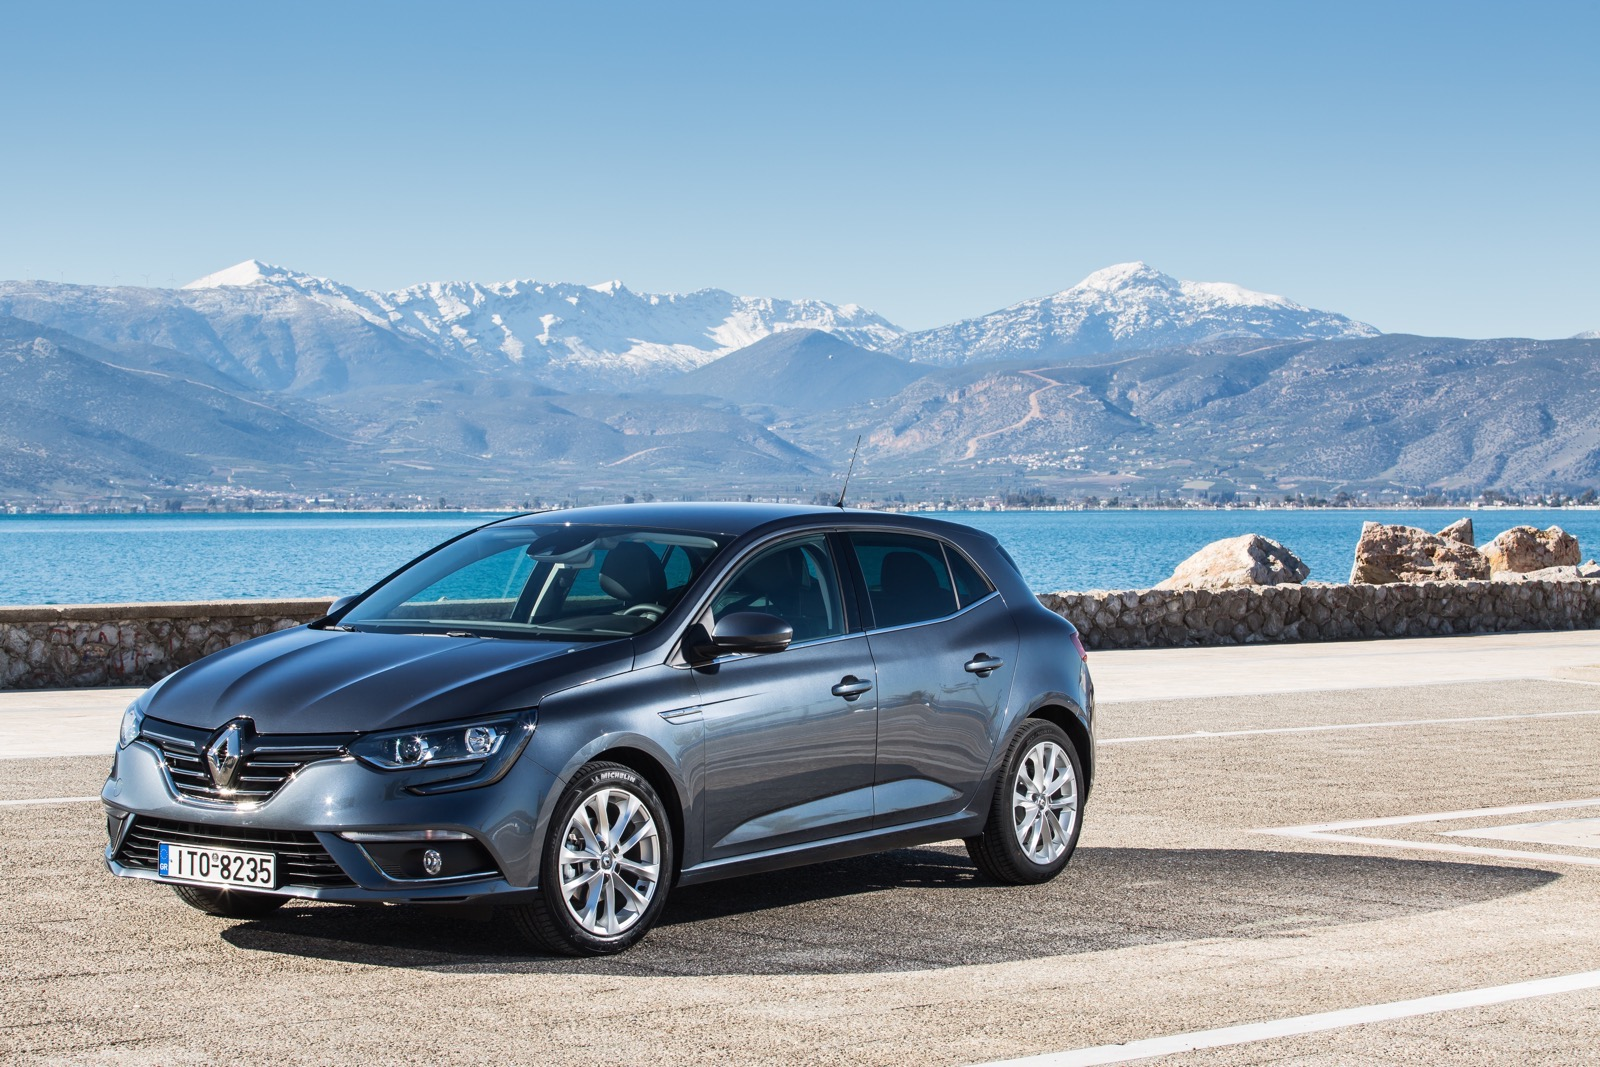 First_Drive_Renault_Megane_18